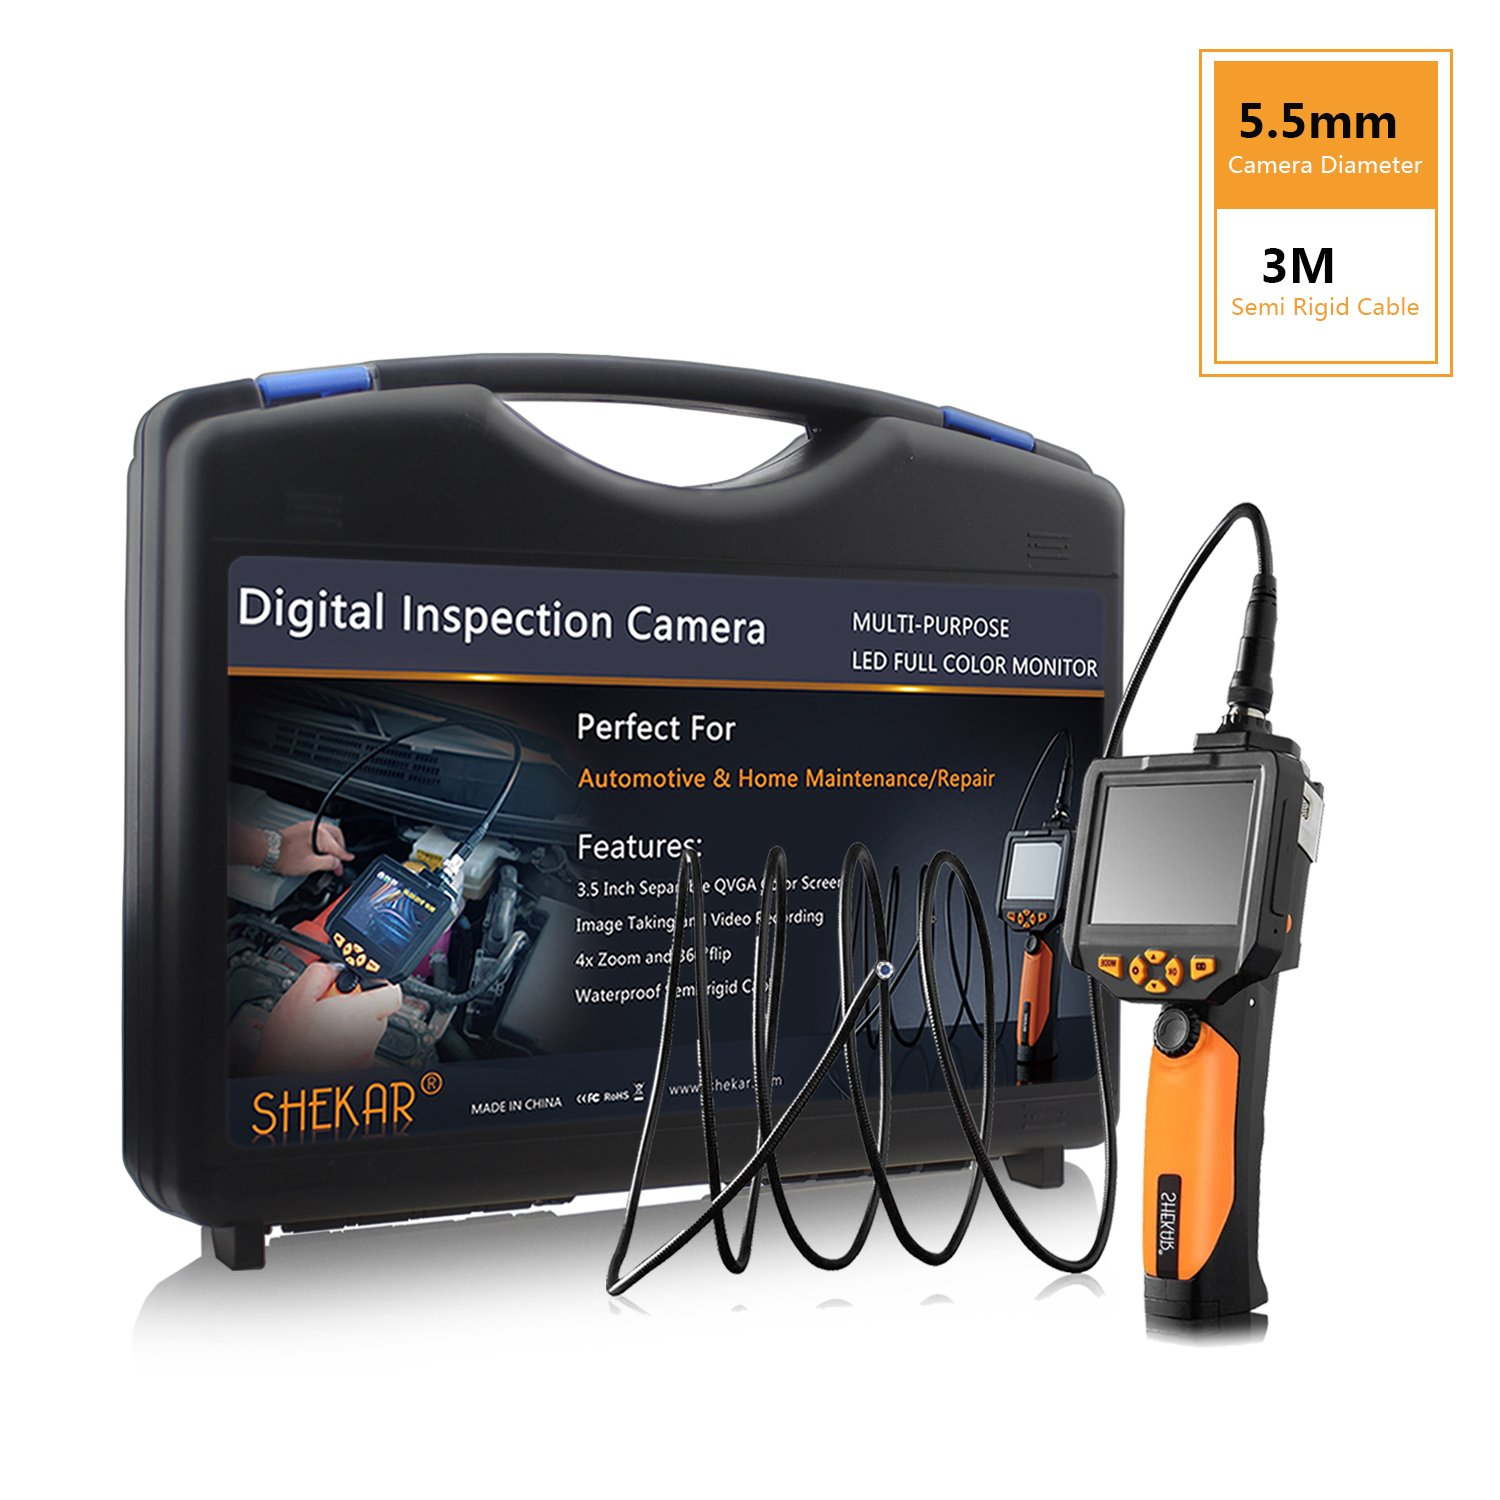 [Slim 5.5mm Dia.]SHEKAR Digital Inspection Camera with 3M Rigid Endoscope Camera, 2.7 inch Color Screen, Function of Zoom, Waterproof Handheld Borescope+Tool Box NTS100-3M